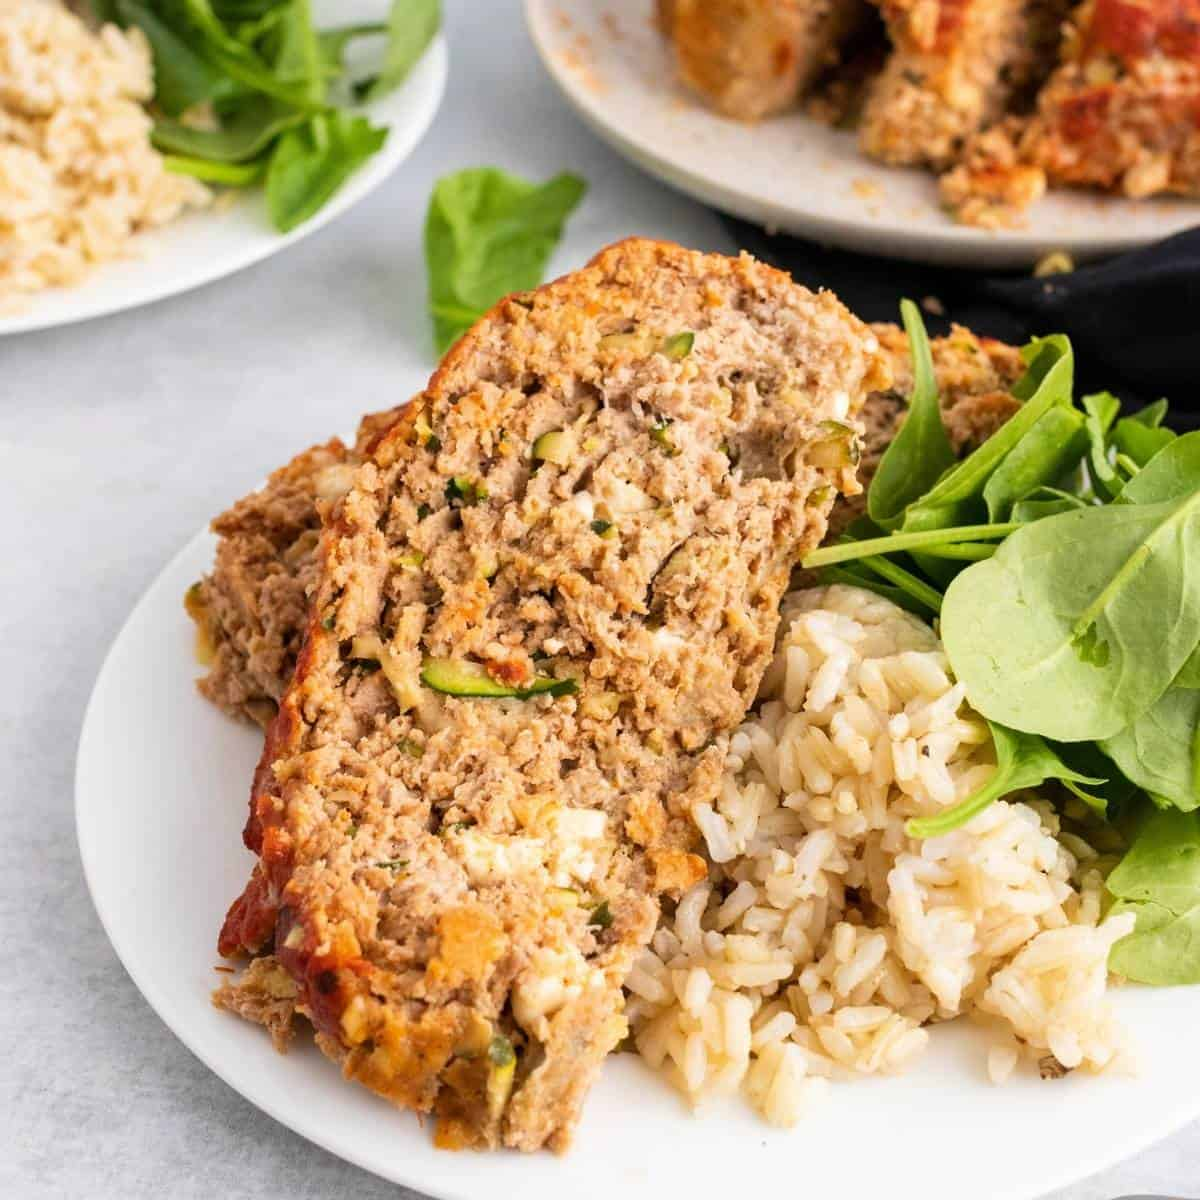 Delicious turkey zucchini meatloaf with feta